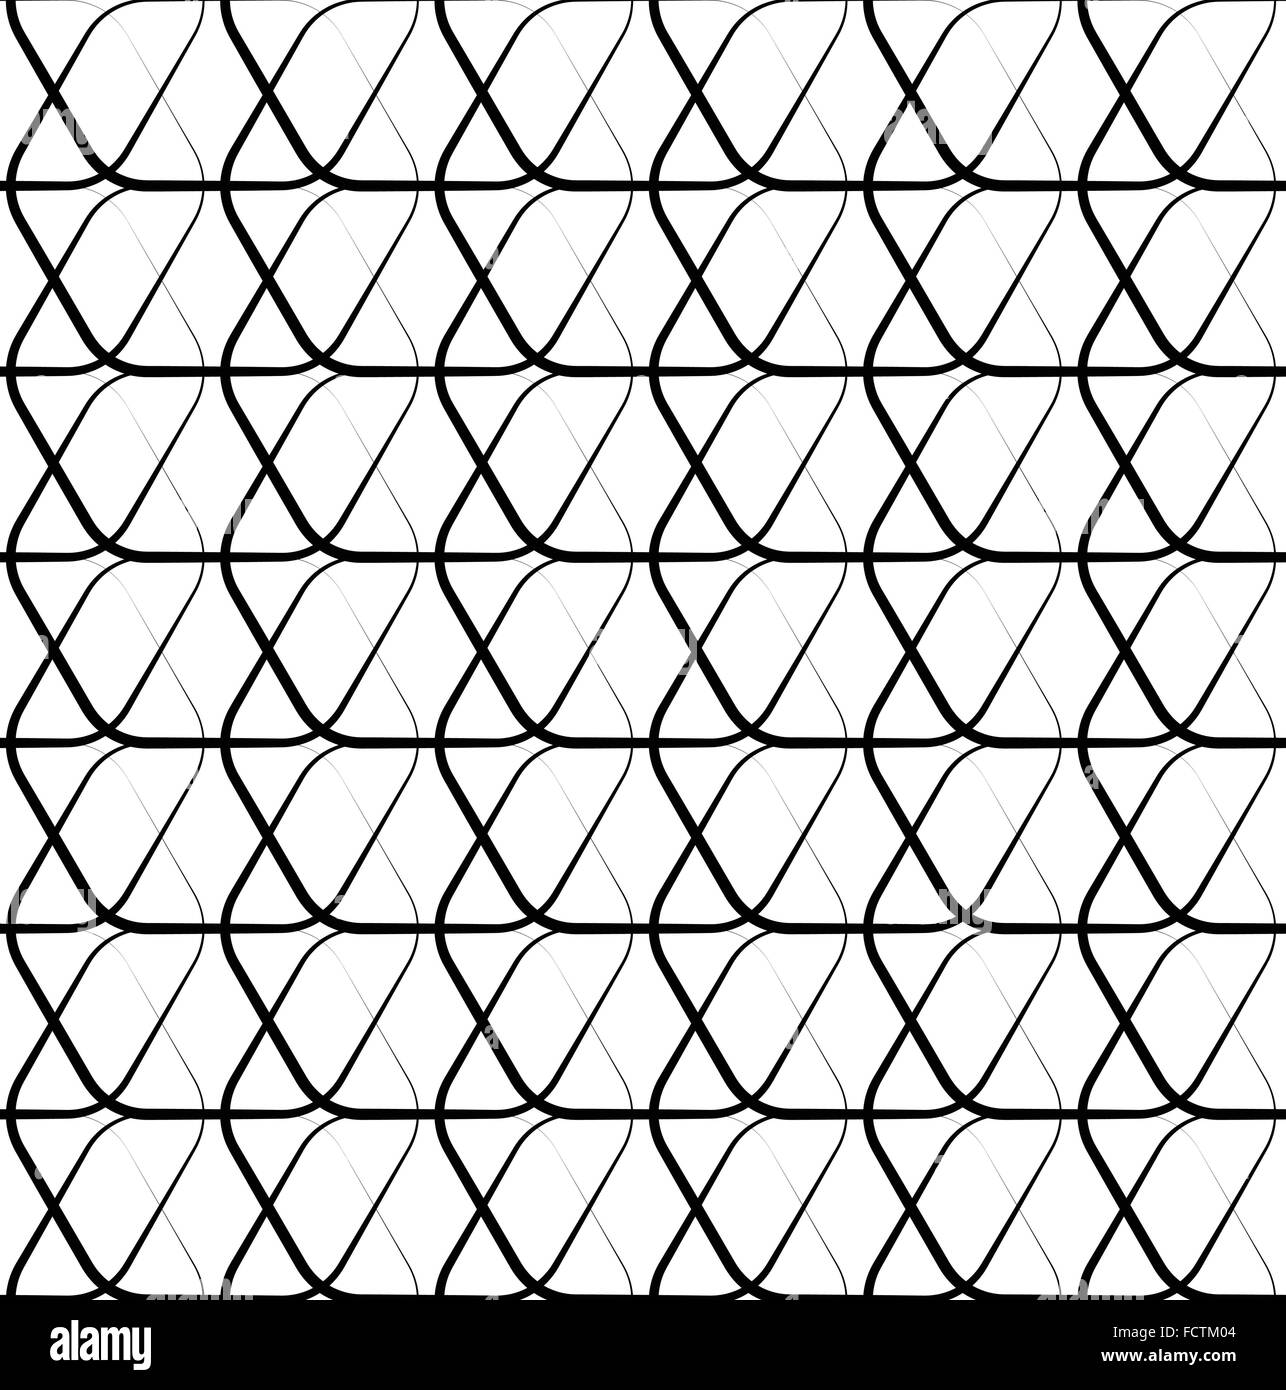 Meshy grid with intersecting lines. Cellular abstract grid, mesh background. Abstract lattice, grating, grille pattern. - Stock Image